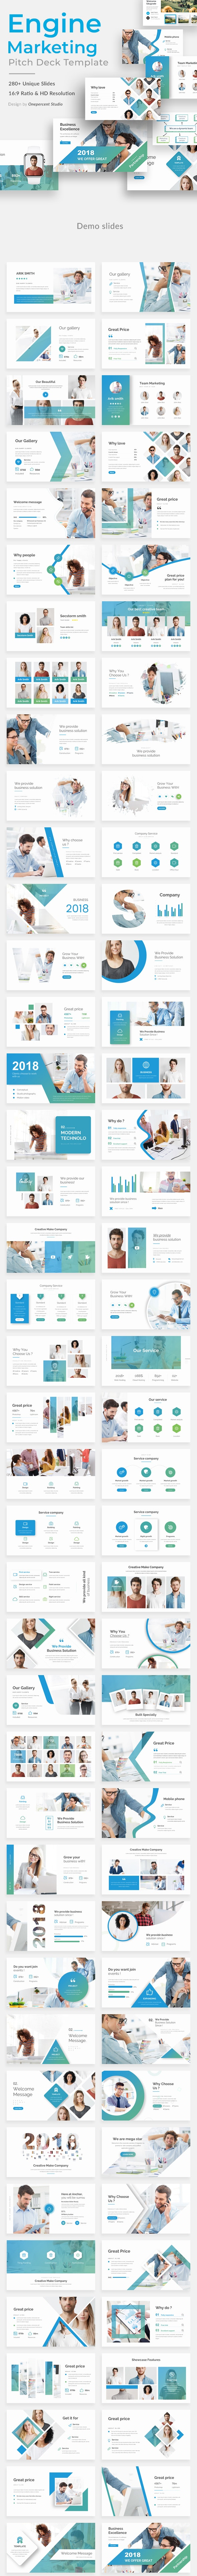 Engine Marketing Pitch Deck Powerpoint Template - Business PowerPoint Templates